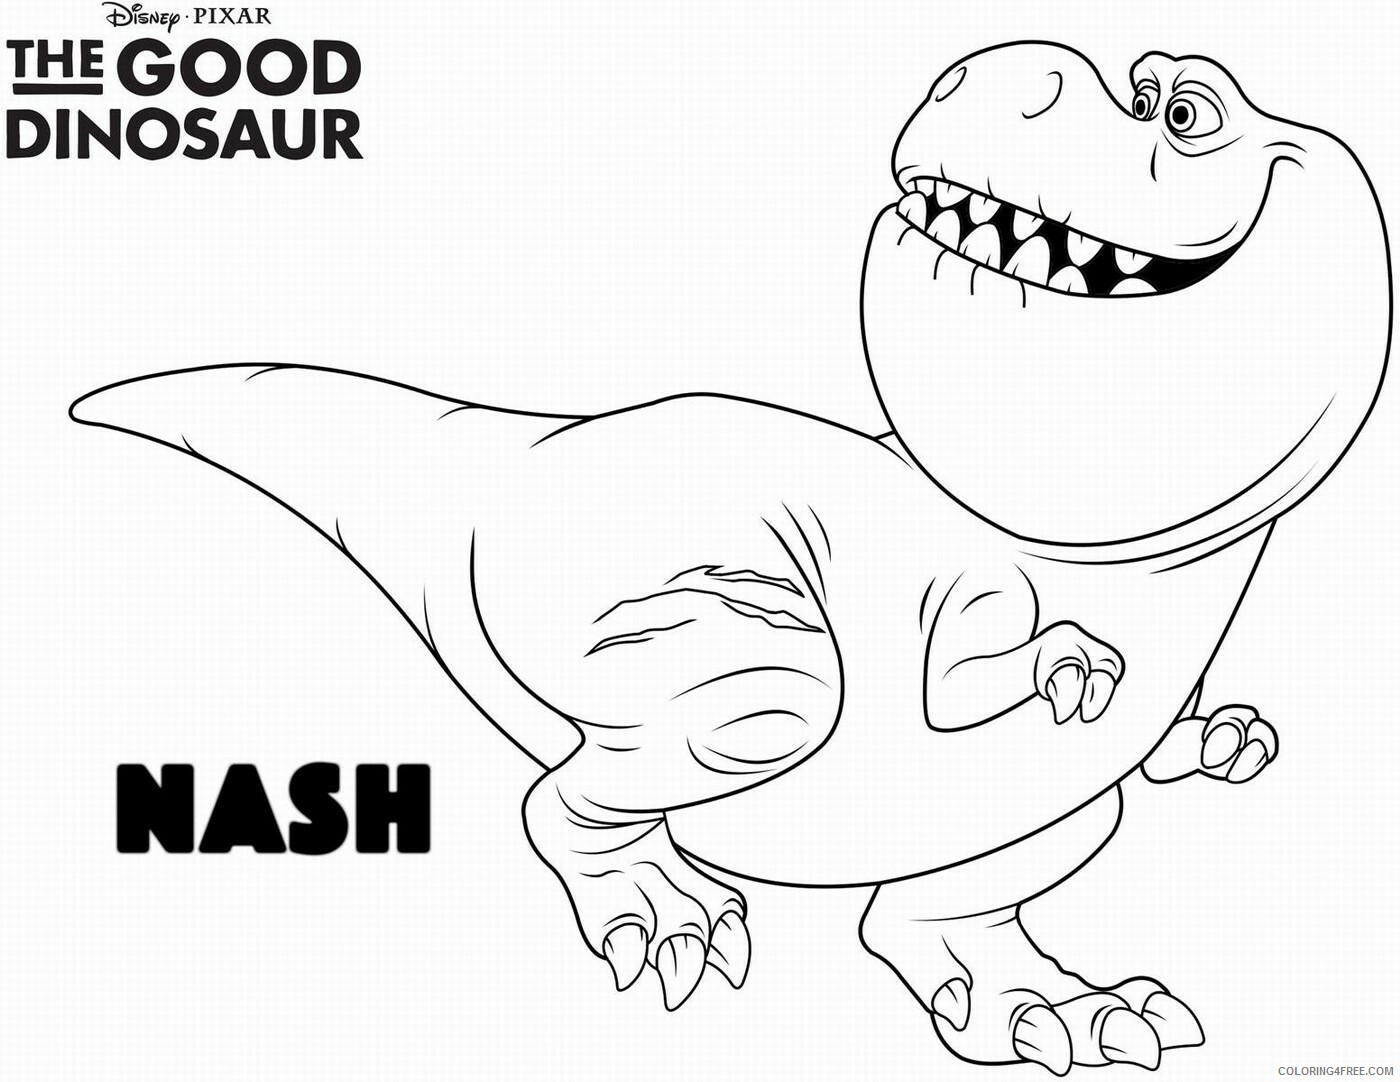 The Good Dinosaur Coloring Pages TV Film Printable 2020 08836 Coloring4free